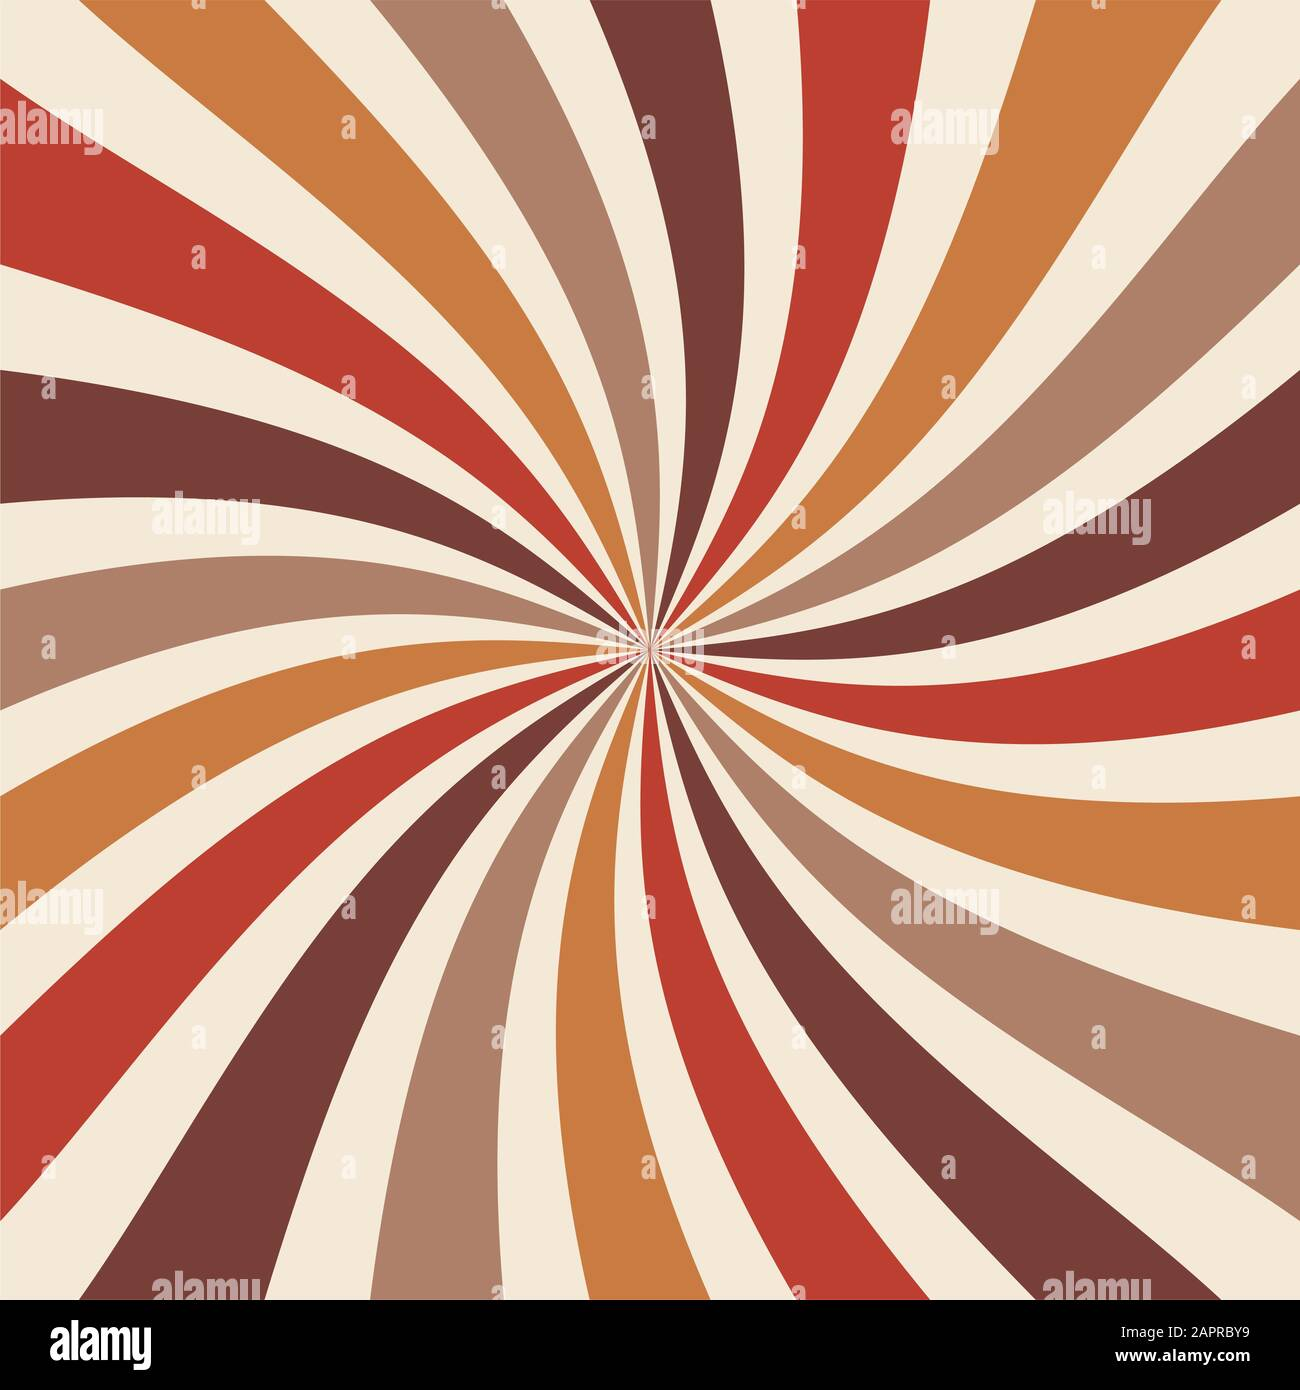 Retro Sunburst Background Vector With Spiral Or Swirl Striped Pattern And Warm Earthy Colors Of Orange Gold And Brown Stock Photo Alamy